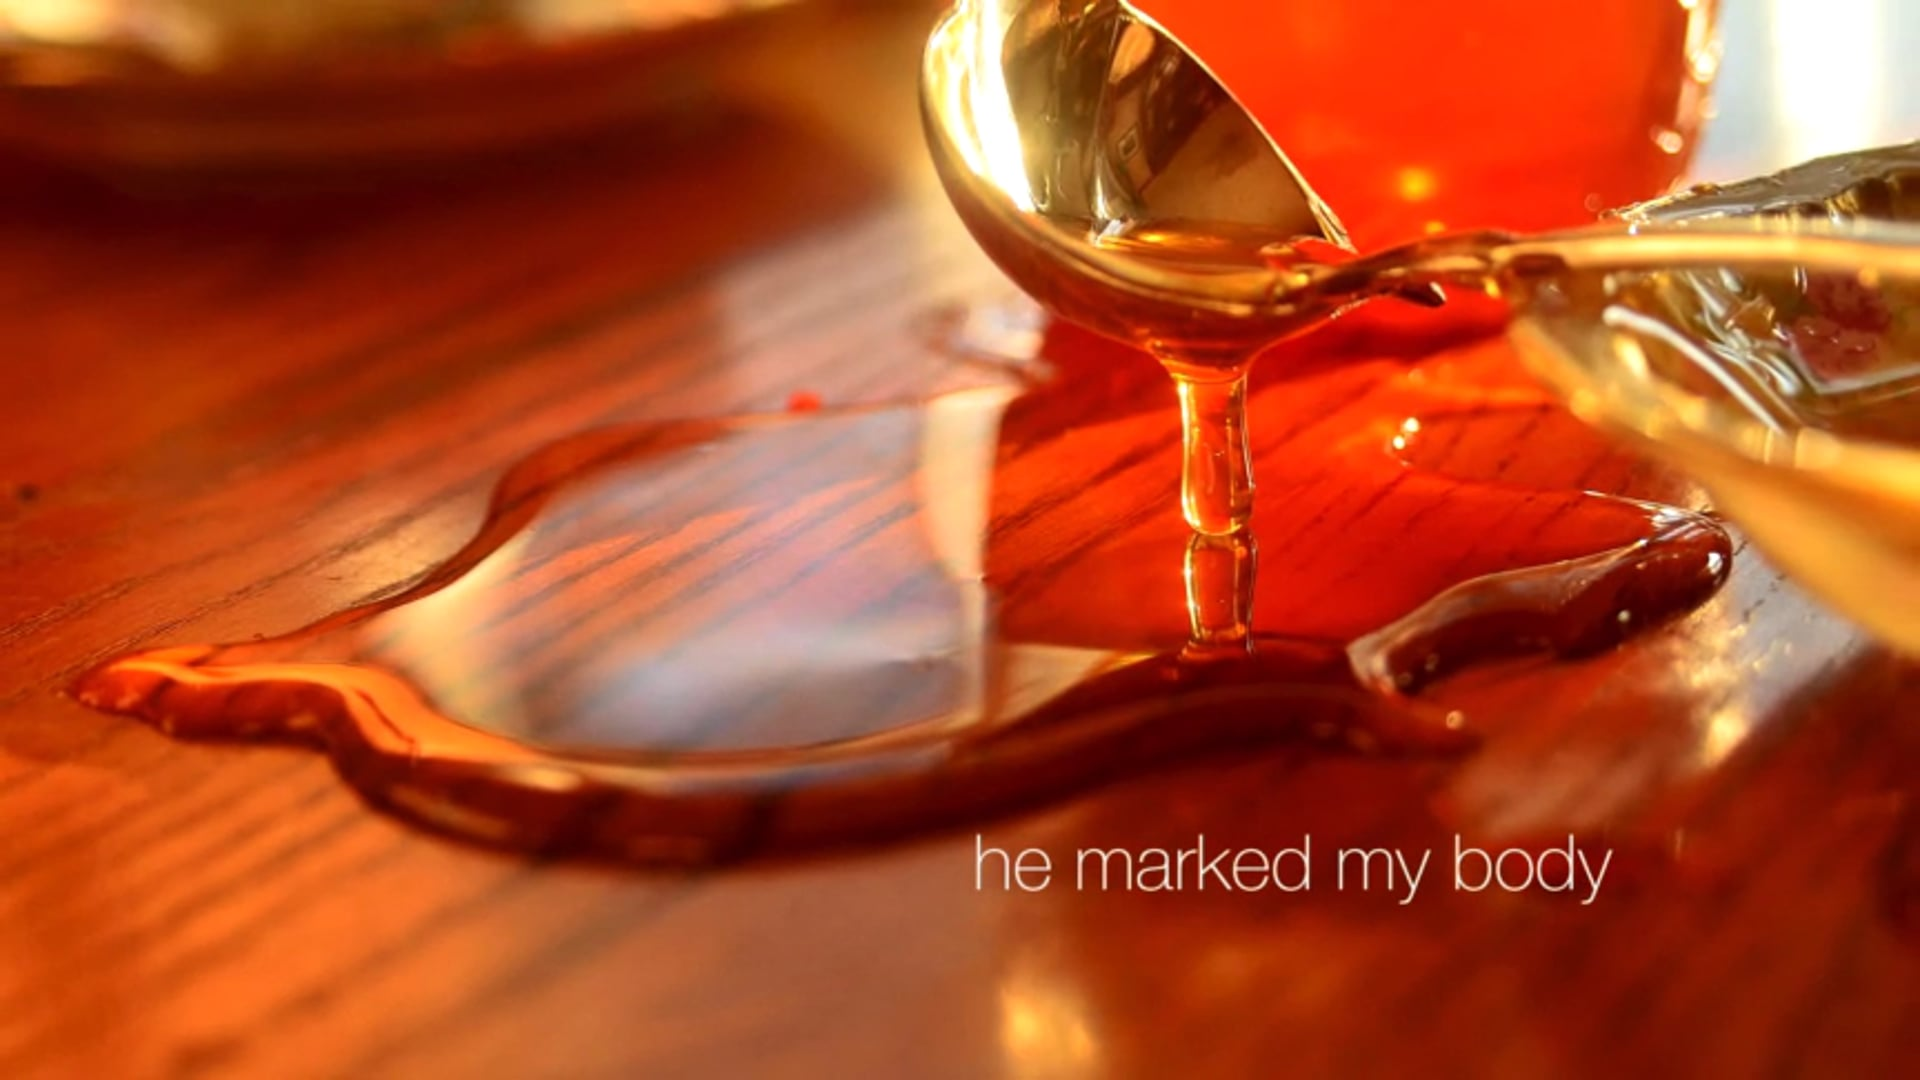 Poetry Video: He Marked My Body